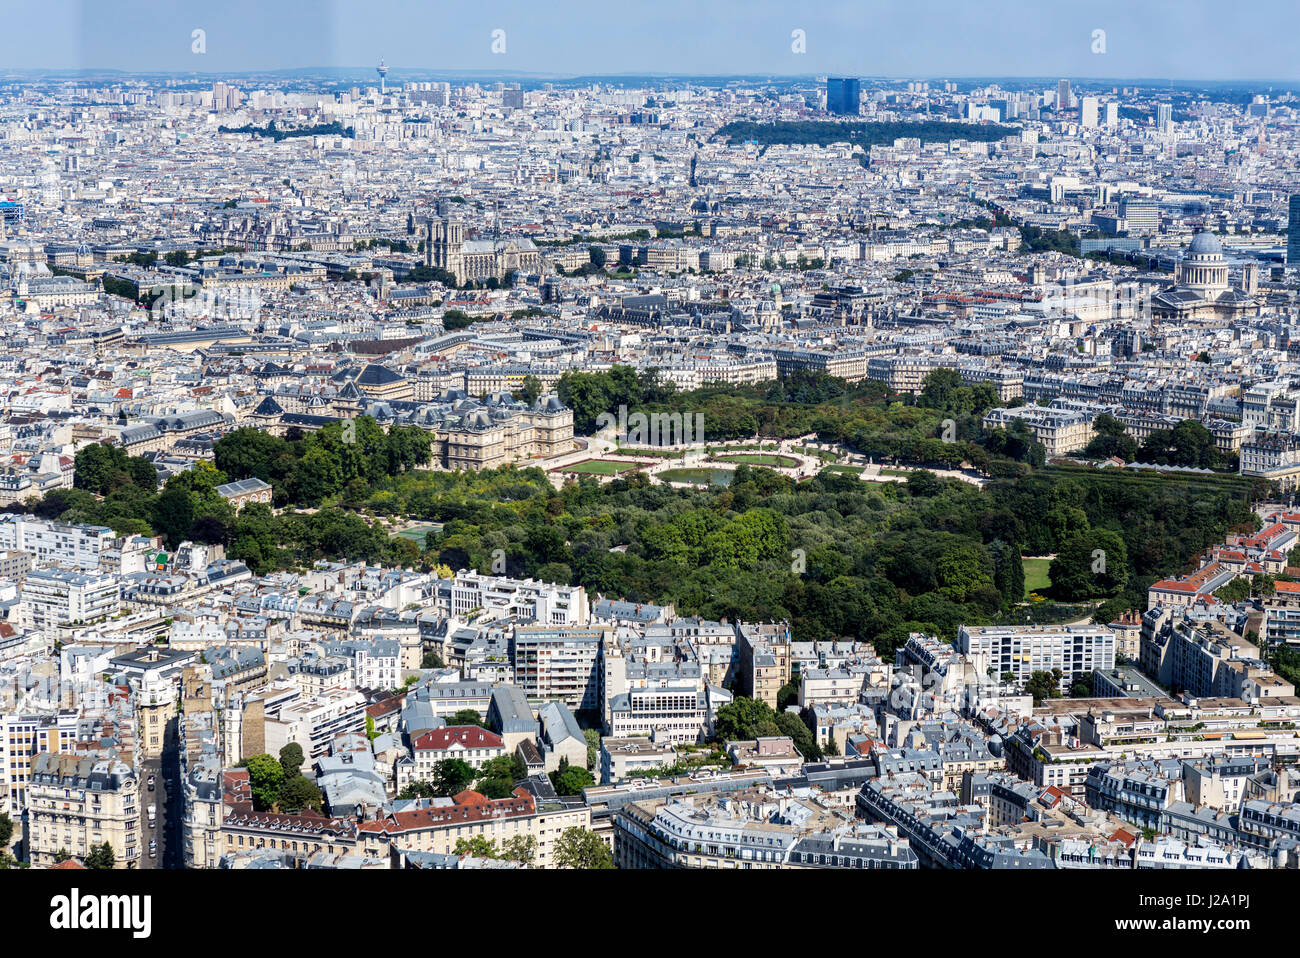 Luxembourg Palace and Gardens from the observation deck at the top of the Tour Montparnasse, Paris, France - Stock Image